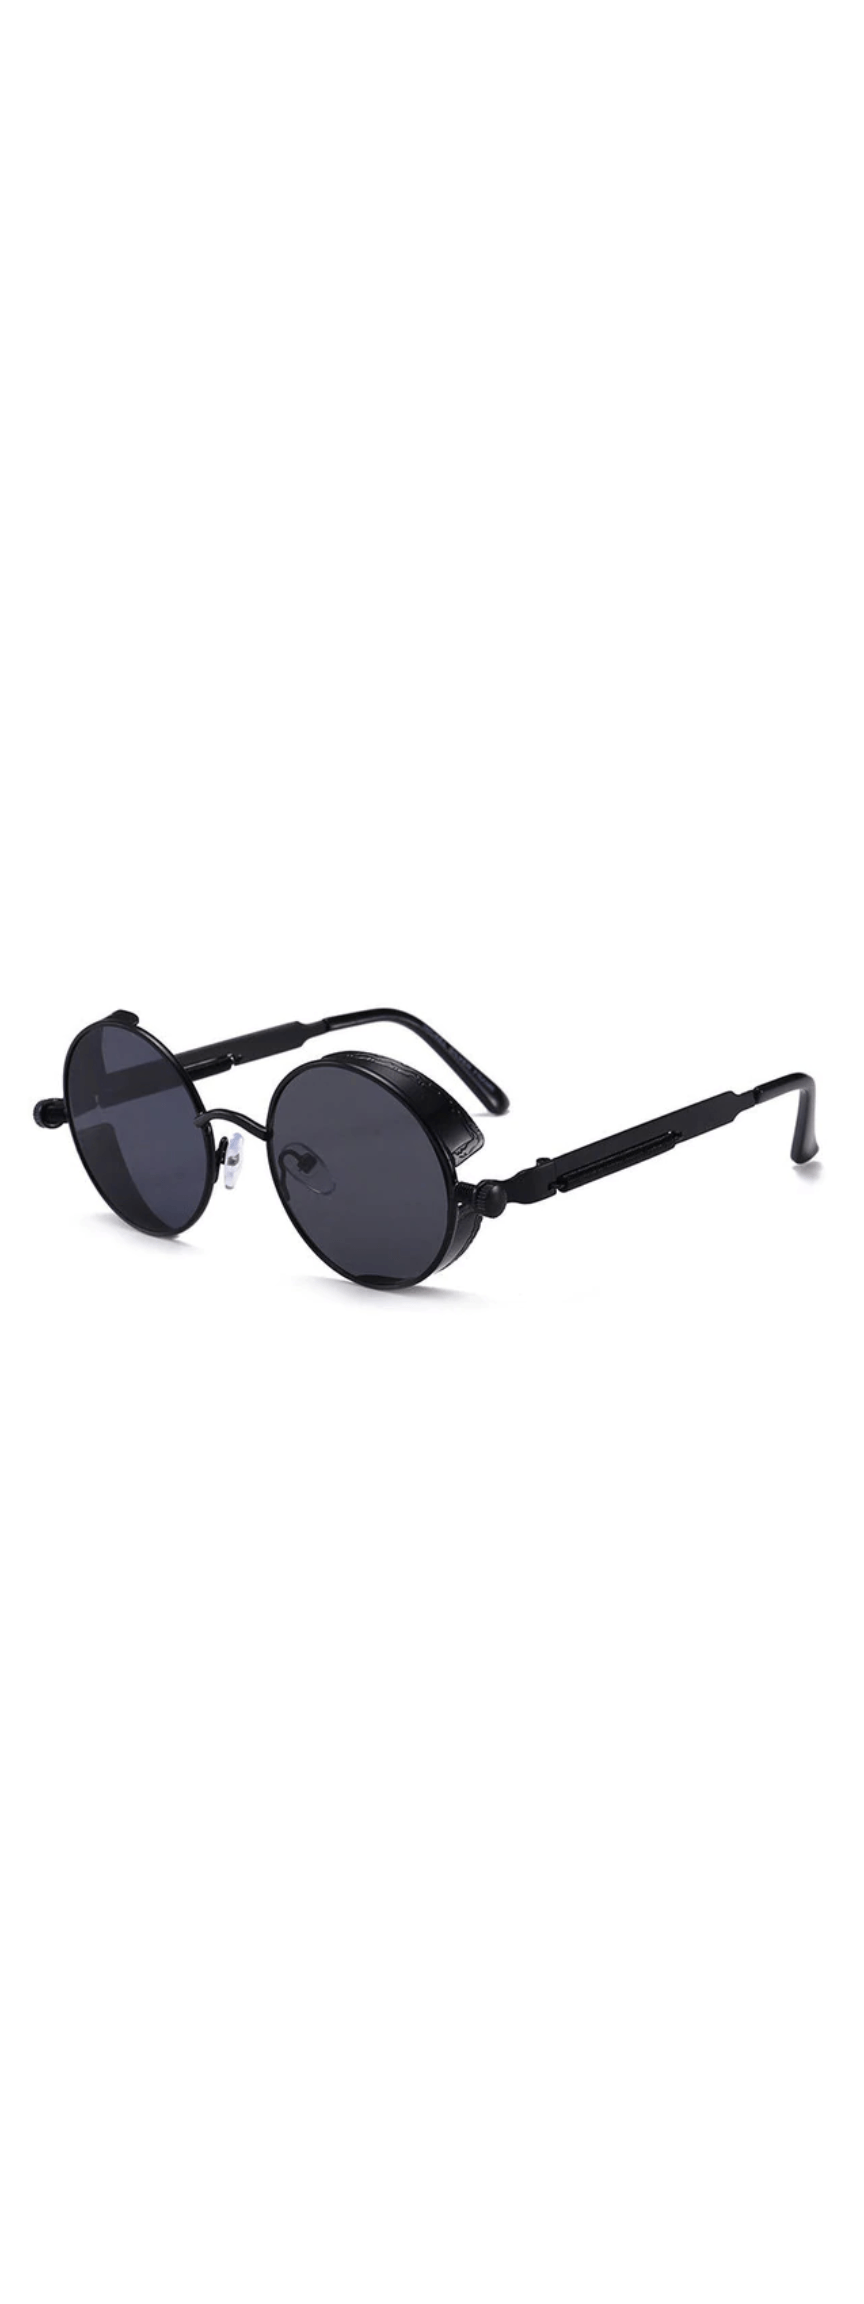 Mad Max Sunglasses - Black